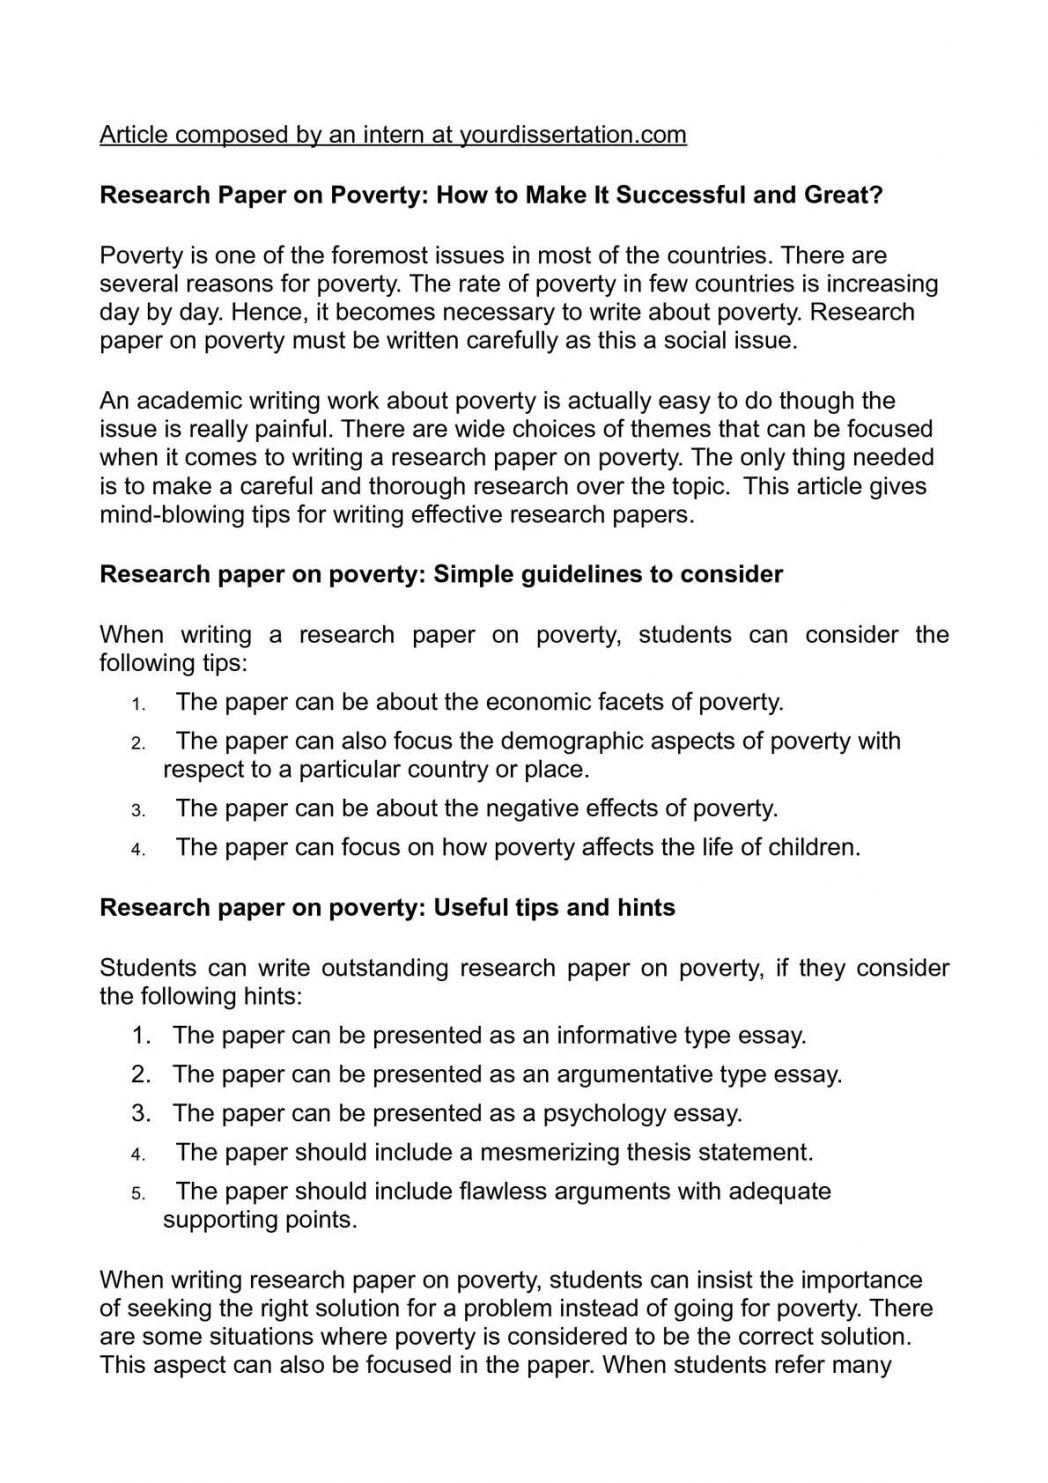 010 Research Paper On Poverty How To Make It Successful And Essay Writing In Pakist India Pakistan 1048x1483 Example Problem Wondrous Of Solution Full